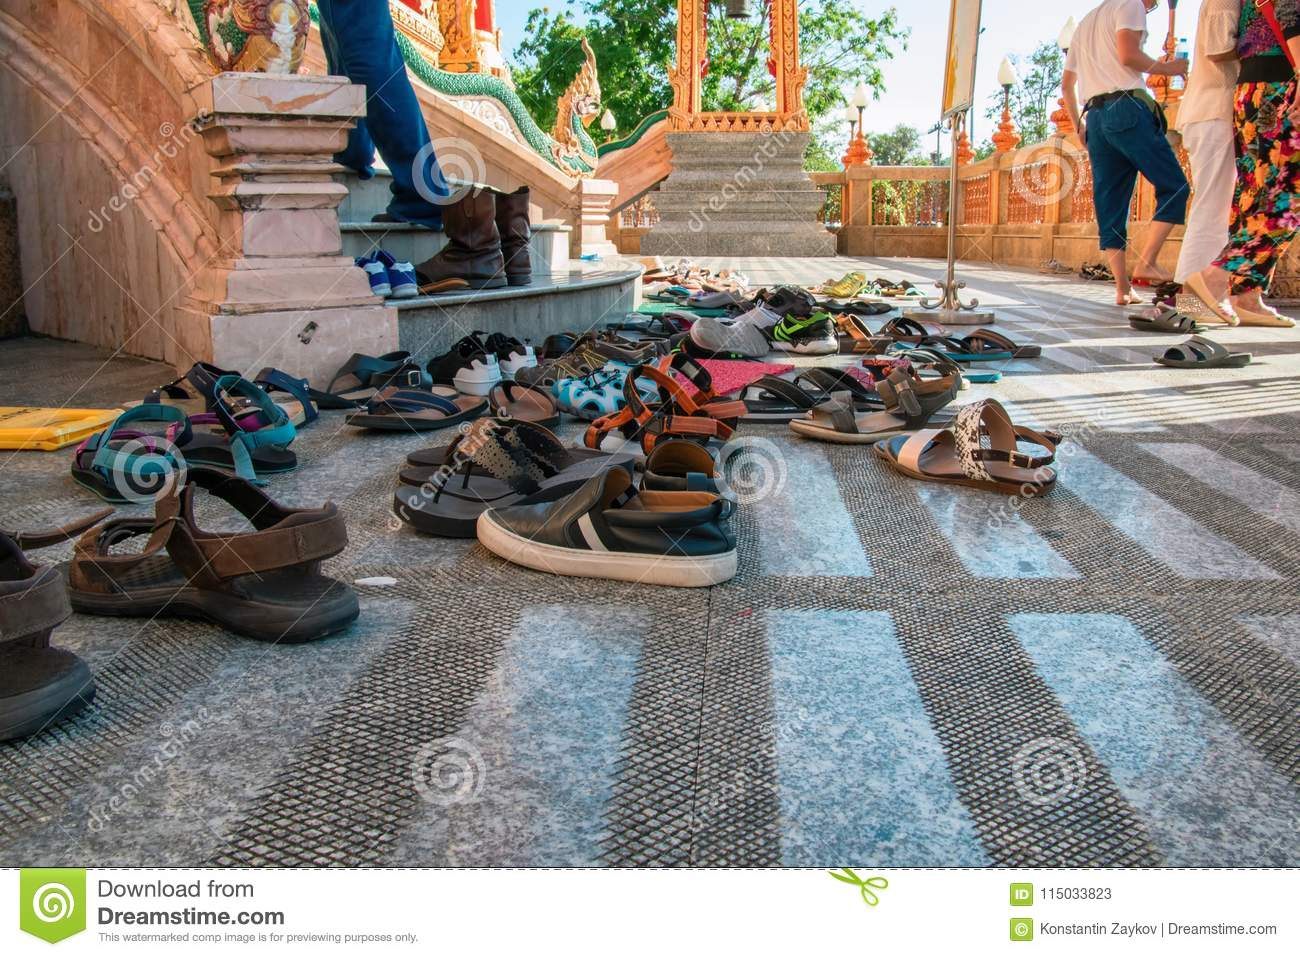 Shoes left at the entrance to the Buddhist temple. Concept of observing traditions, tolerance, gratitude and respect.